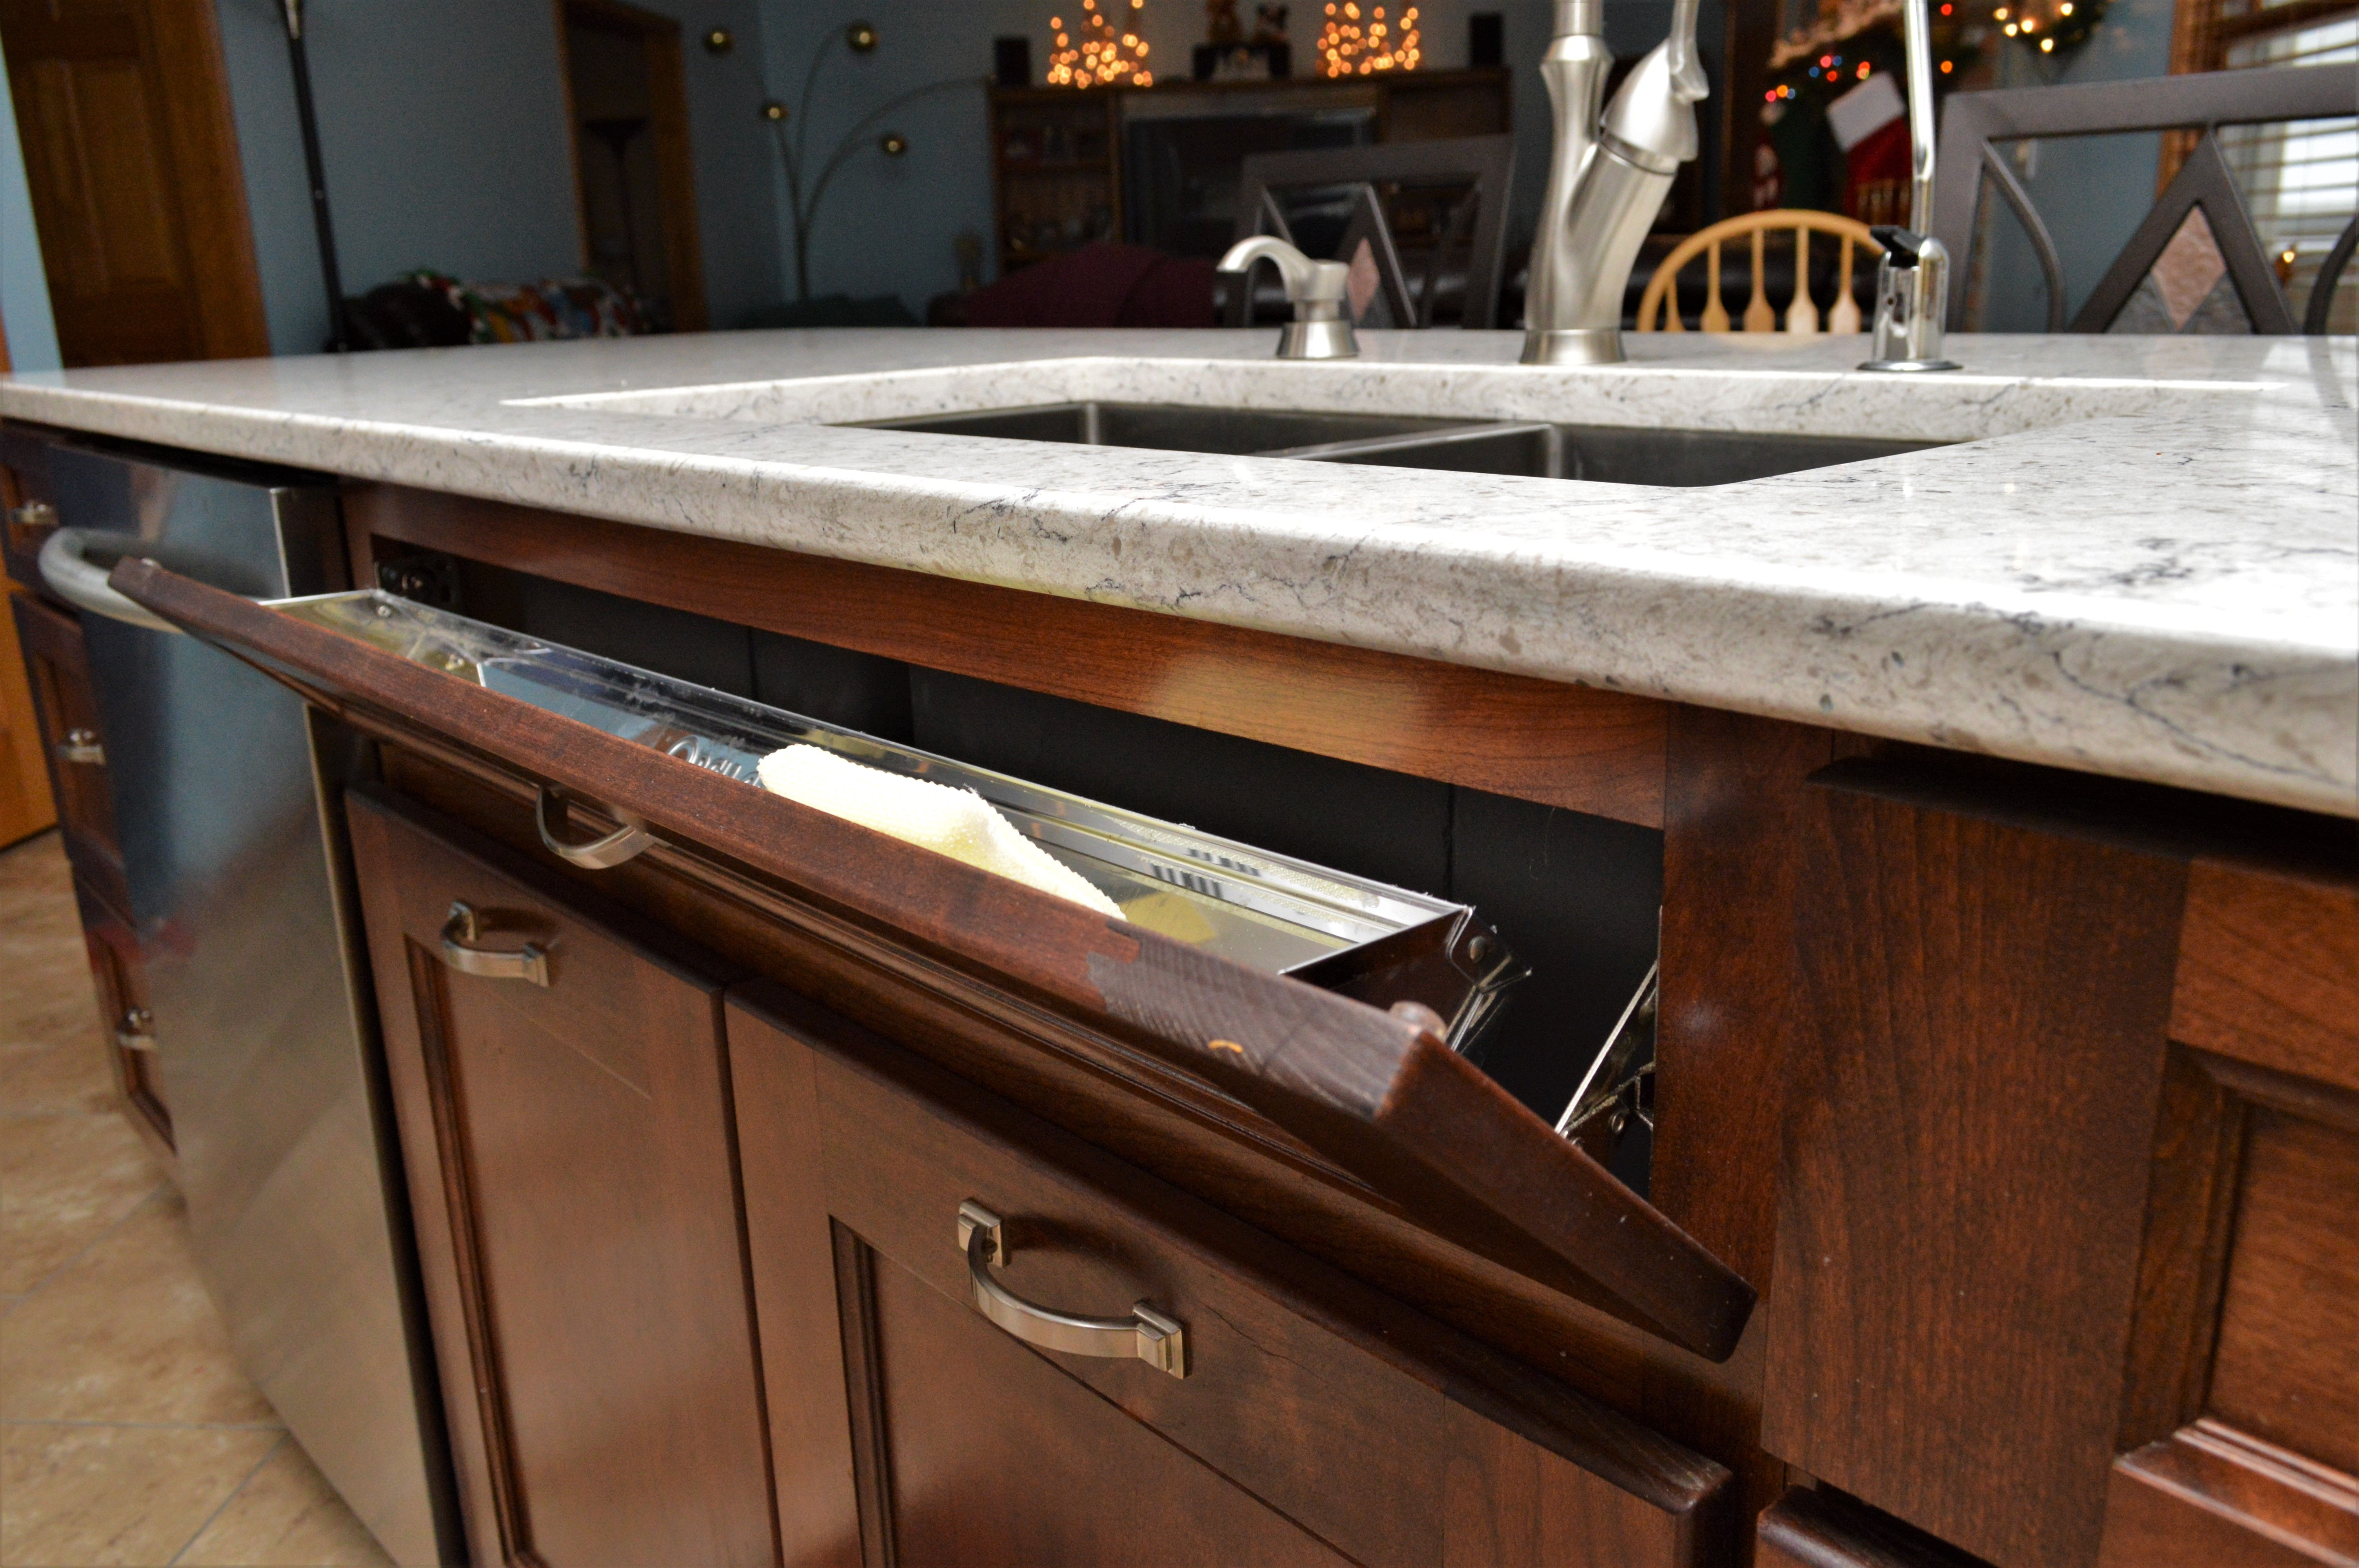 Tilt Out Sink Tray Cabinet Brand Haas Signature Collection Wood Species Cherry Cabinet Finish Pecan Door Style Tud Cabinet Accessories Home Decor Decor